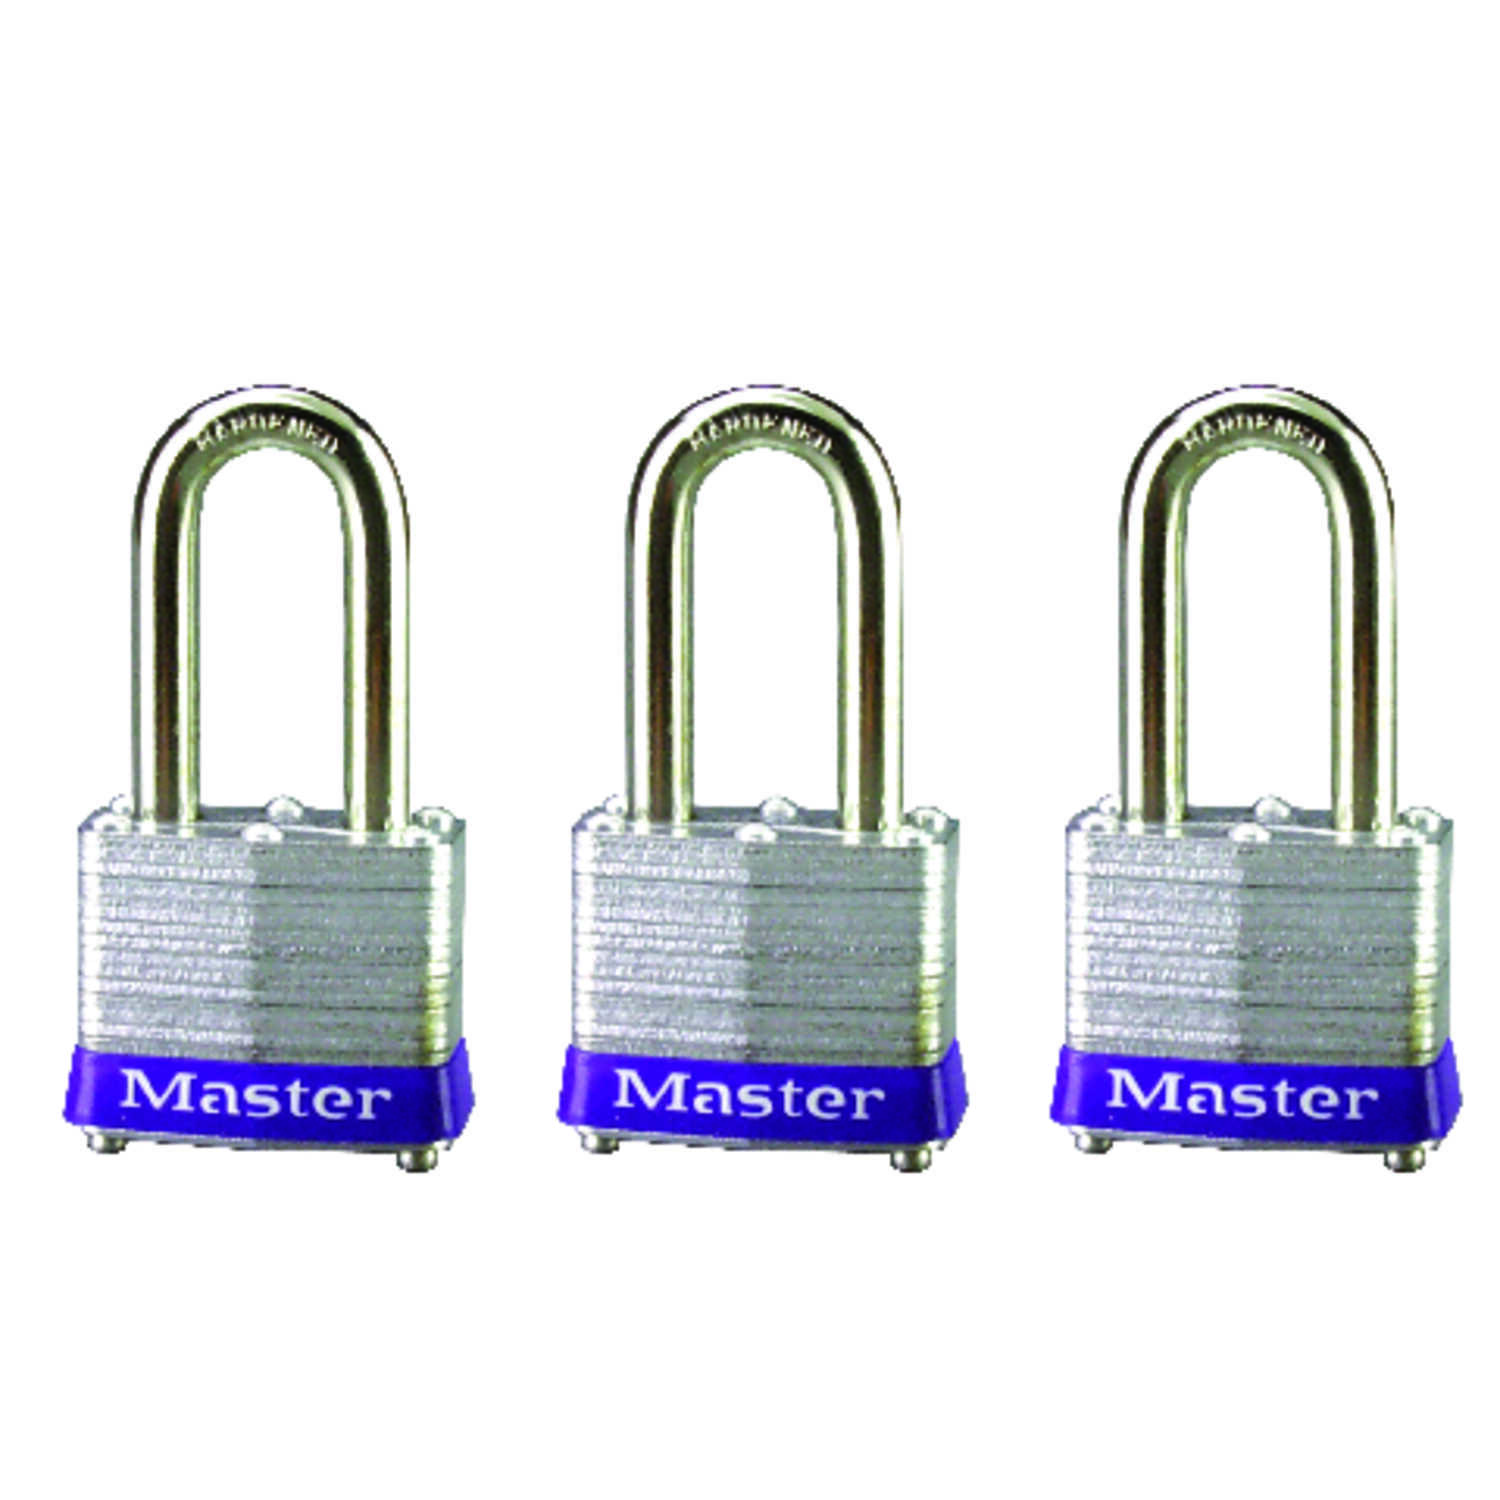 Master Lock  1-5/16 in. H x 1-5/8 in. W x 1-9/16 in. L Laminated Steel  4-Pin Cylinder  Padlock  3 p